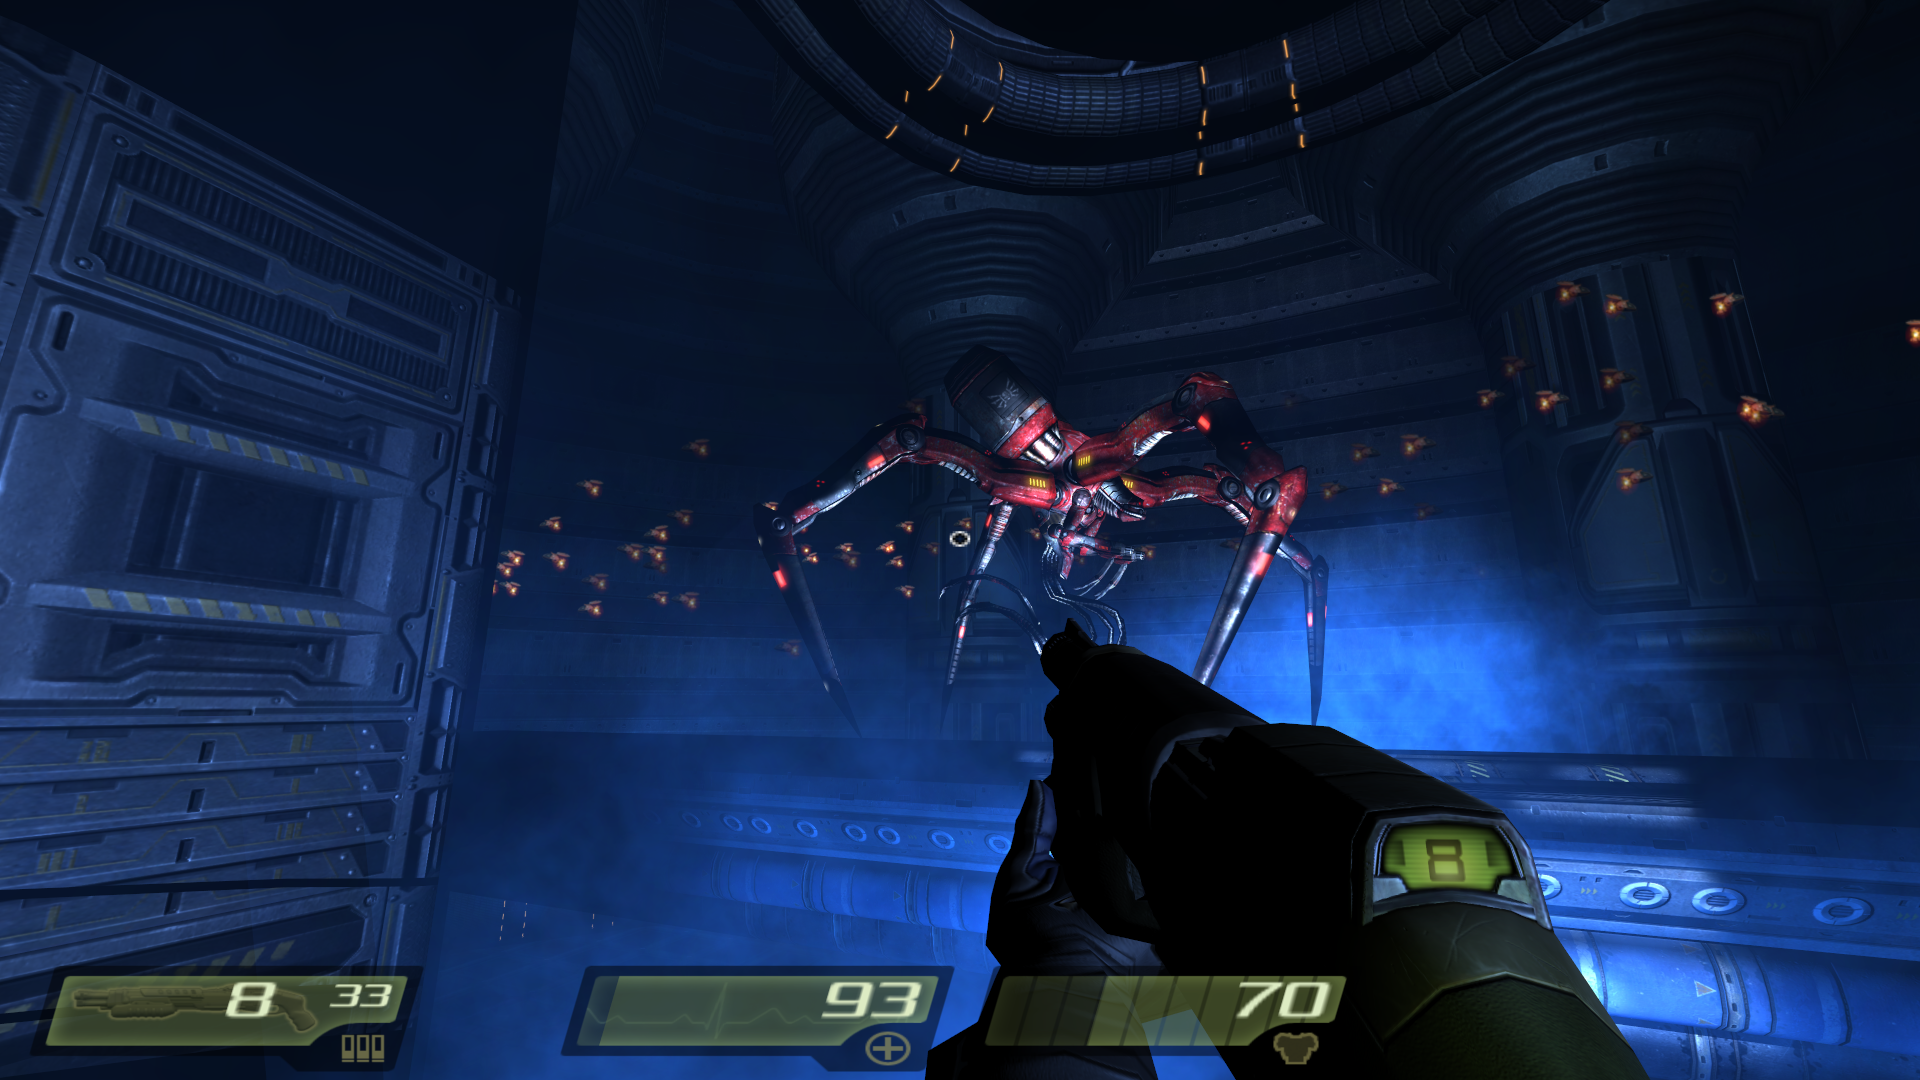 A giant red spiderbot stalks the player through a Strogg facility